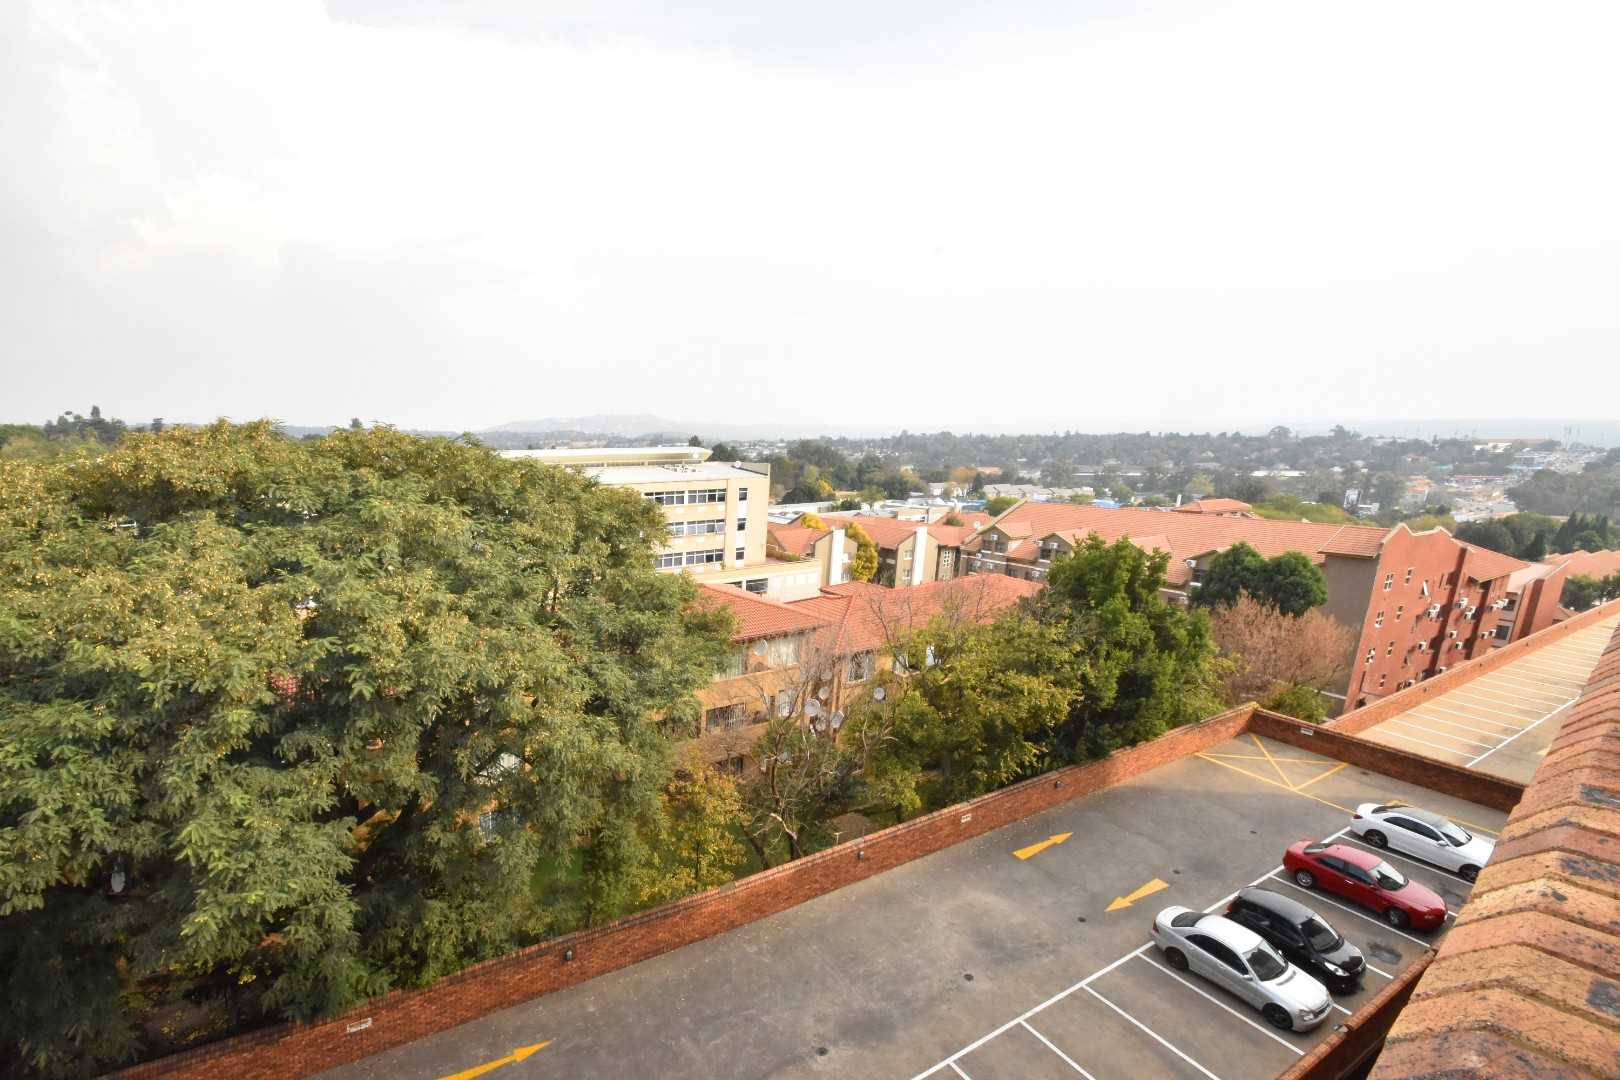 Units on the upper level can see all the way to Northcliff. Watch beautiful sunrises and sunsets from the privacy of your own apartment.